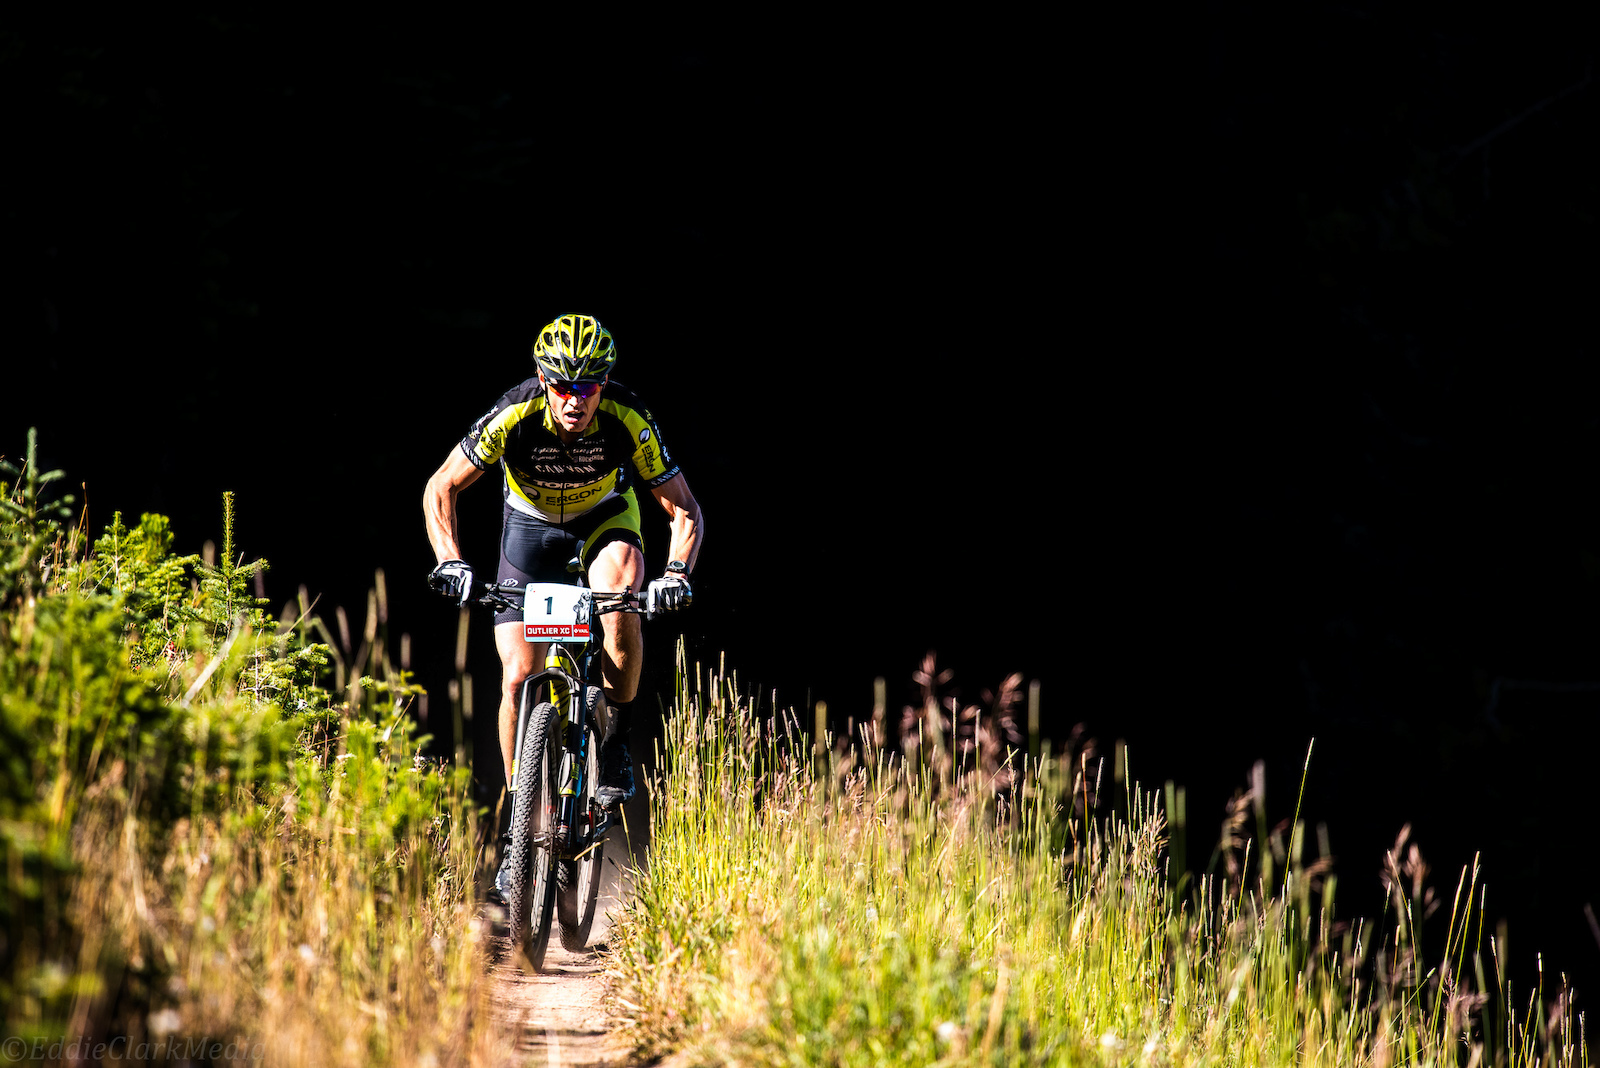 Rocky Mtn legend Dave Wiens rides out of the darkness during the Vail Outlier Offroad XC race.